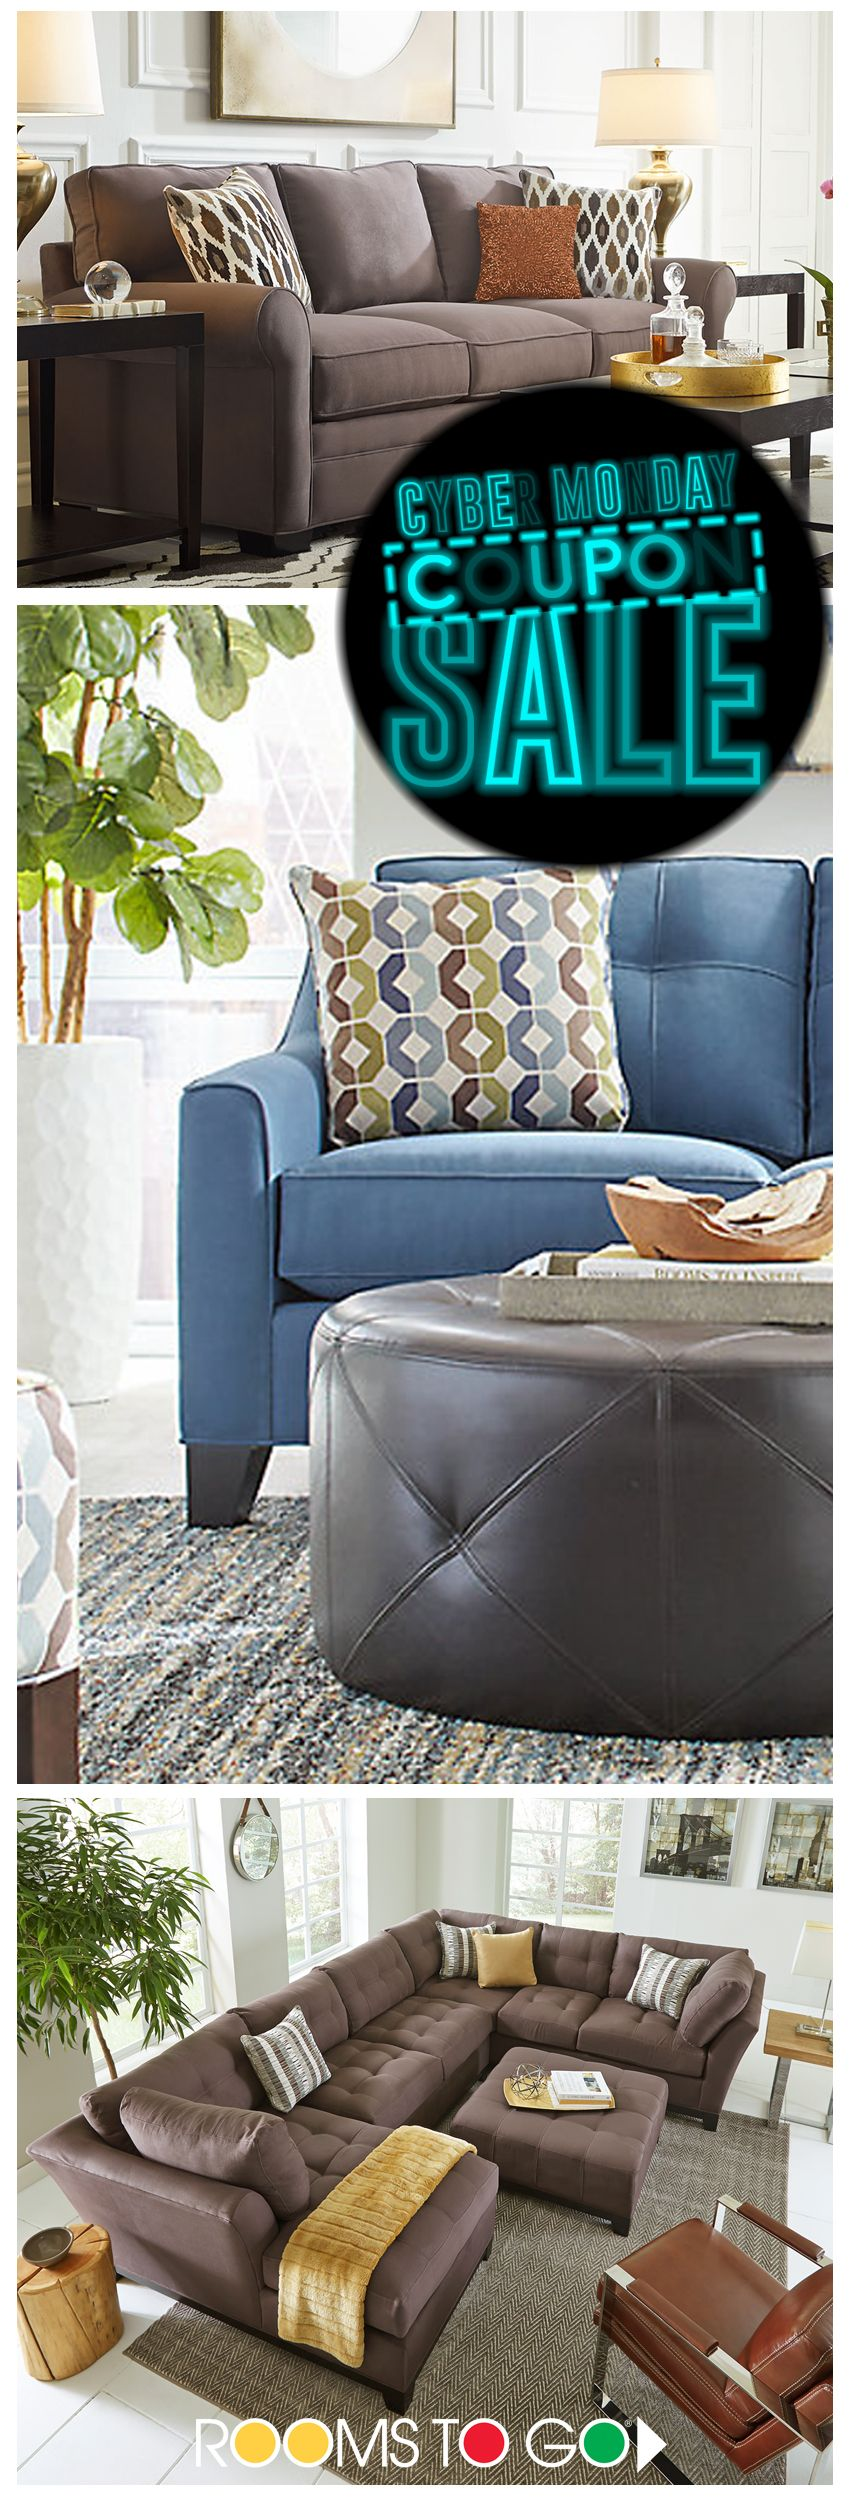 Design My Living Room Online: Shop Rooms To Go Now During Our Holiday Sale, And Don't